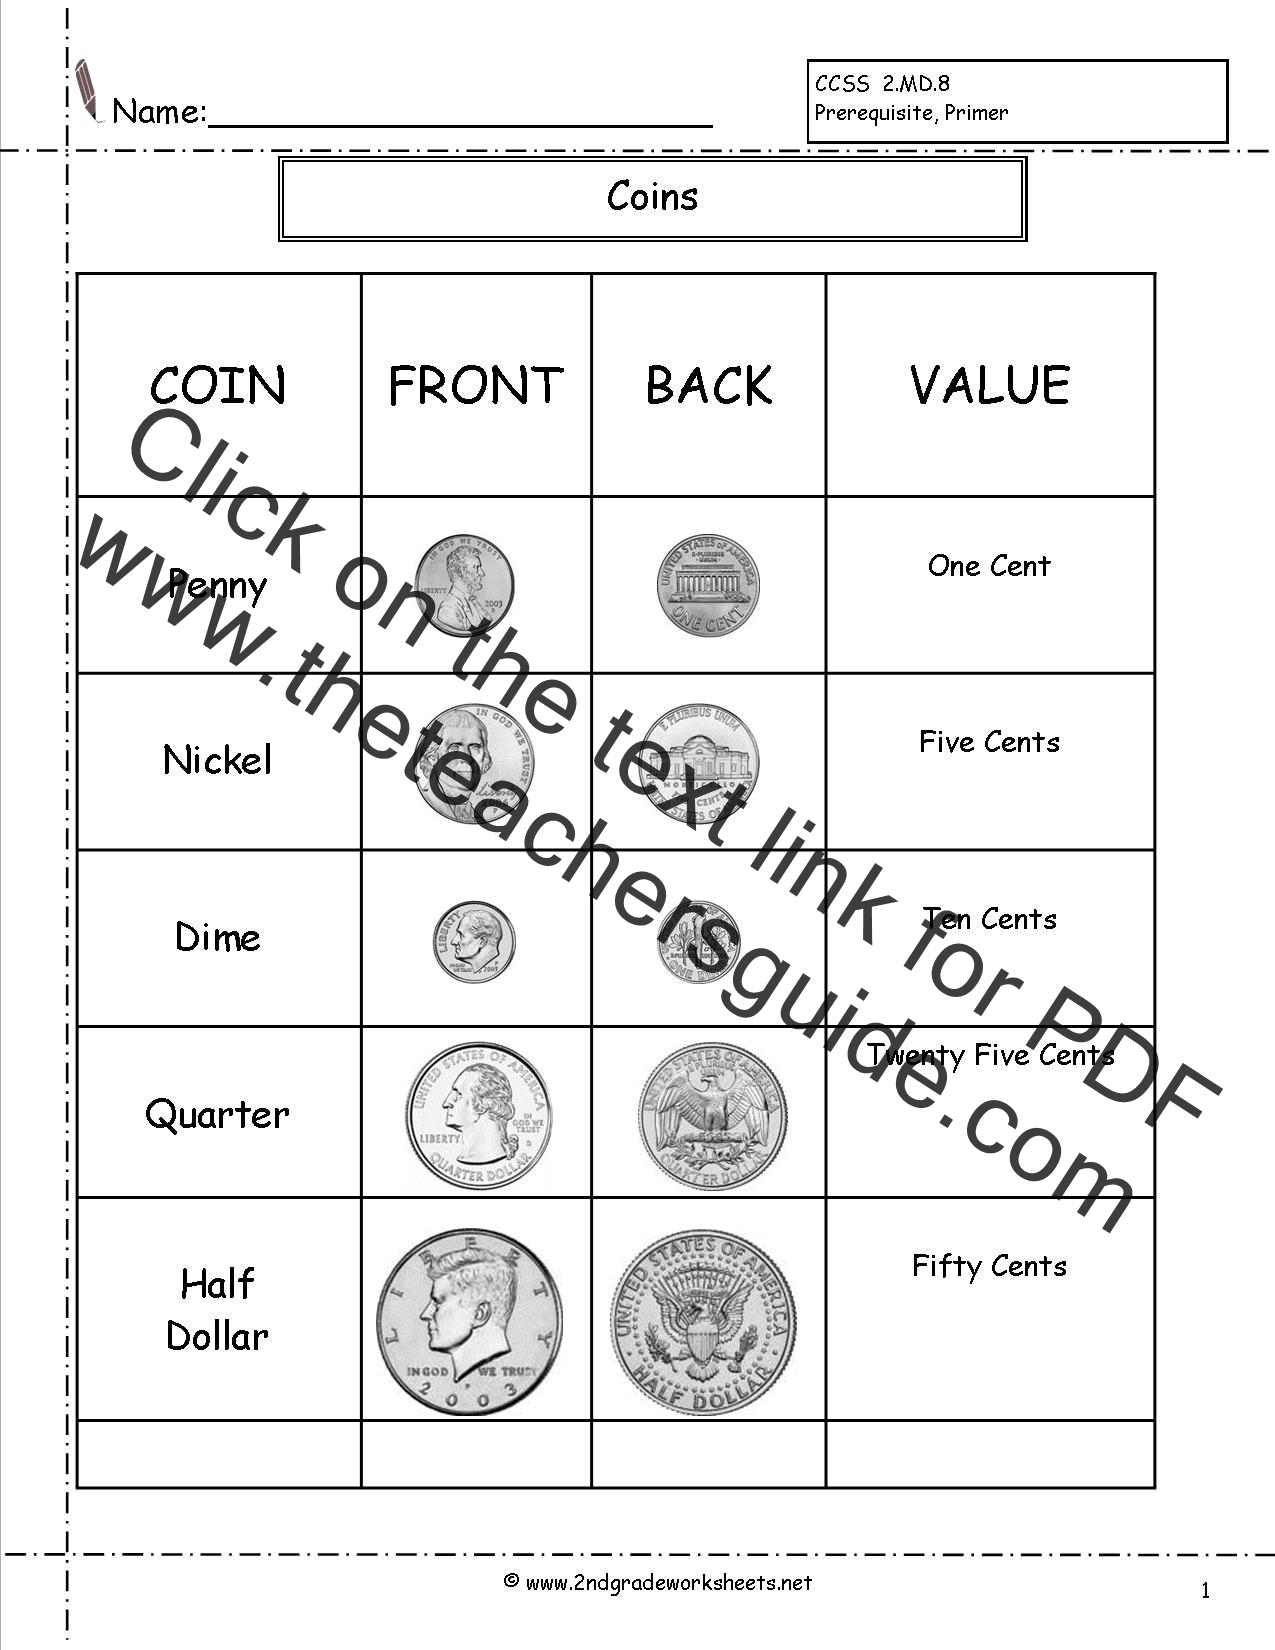 Worksheets Second Grade Money Worksheets counting coins and money worksheets printouts worksheet coin identification values